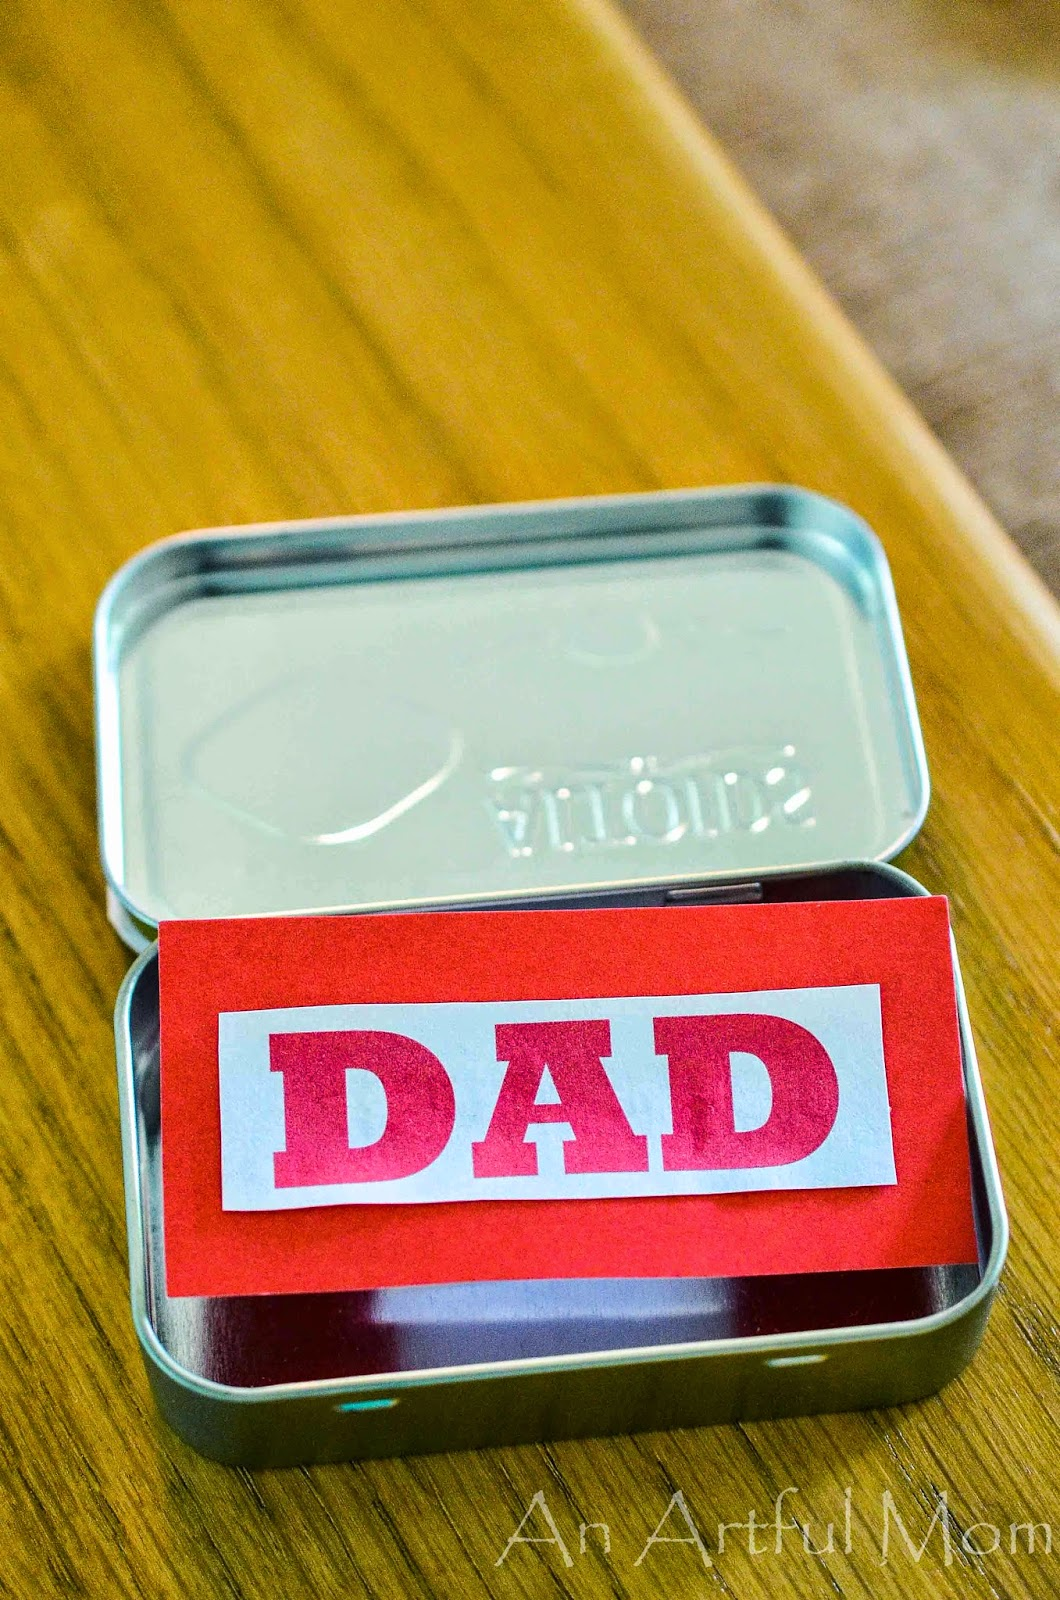 Handmade father's day gift from an Altoids tin